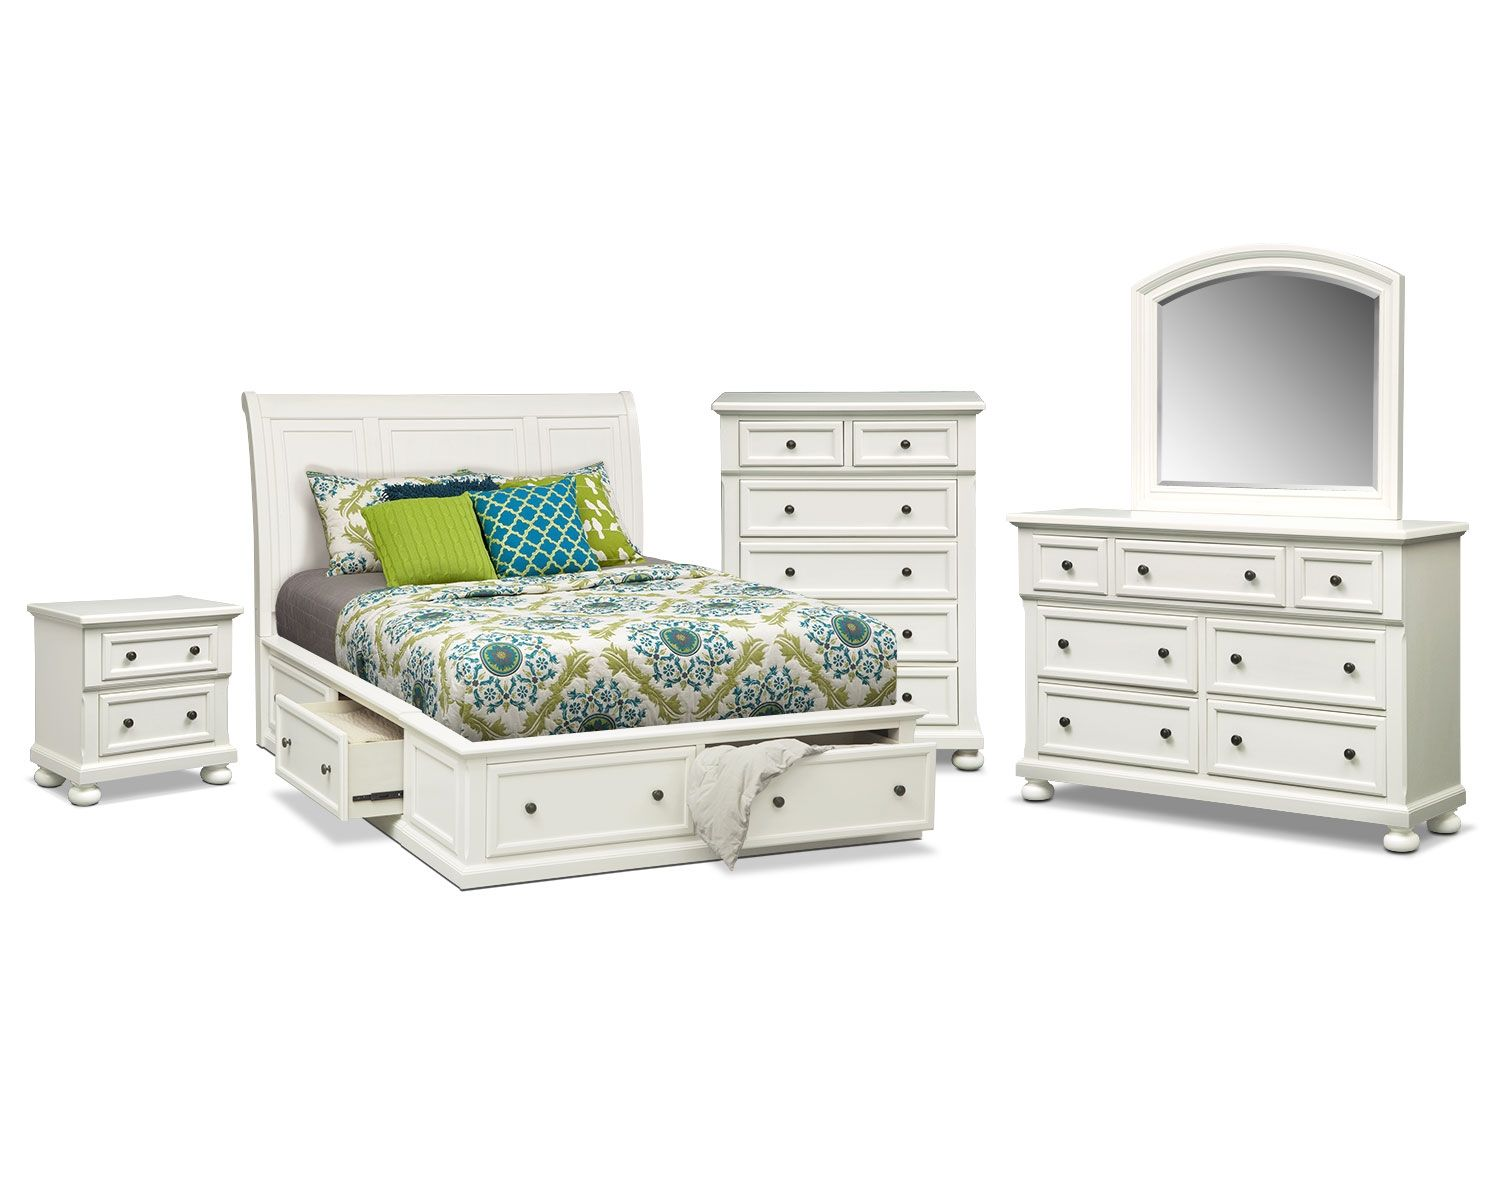 Don't let all your stuff take over! The Hanover White